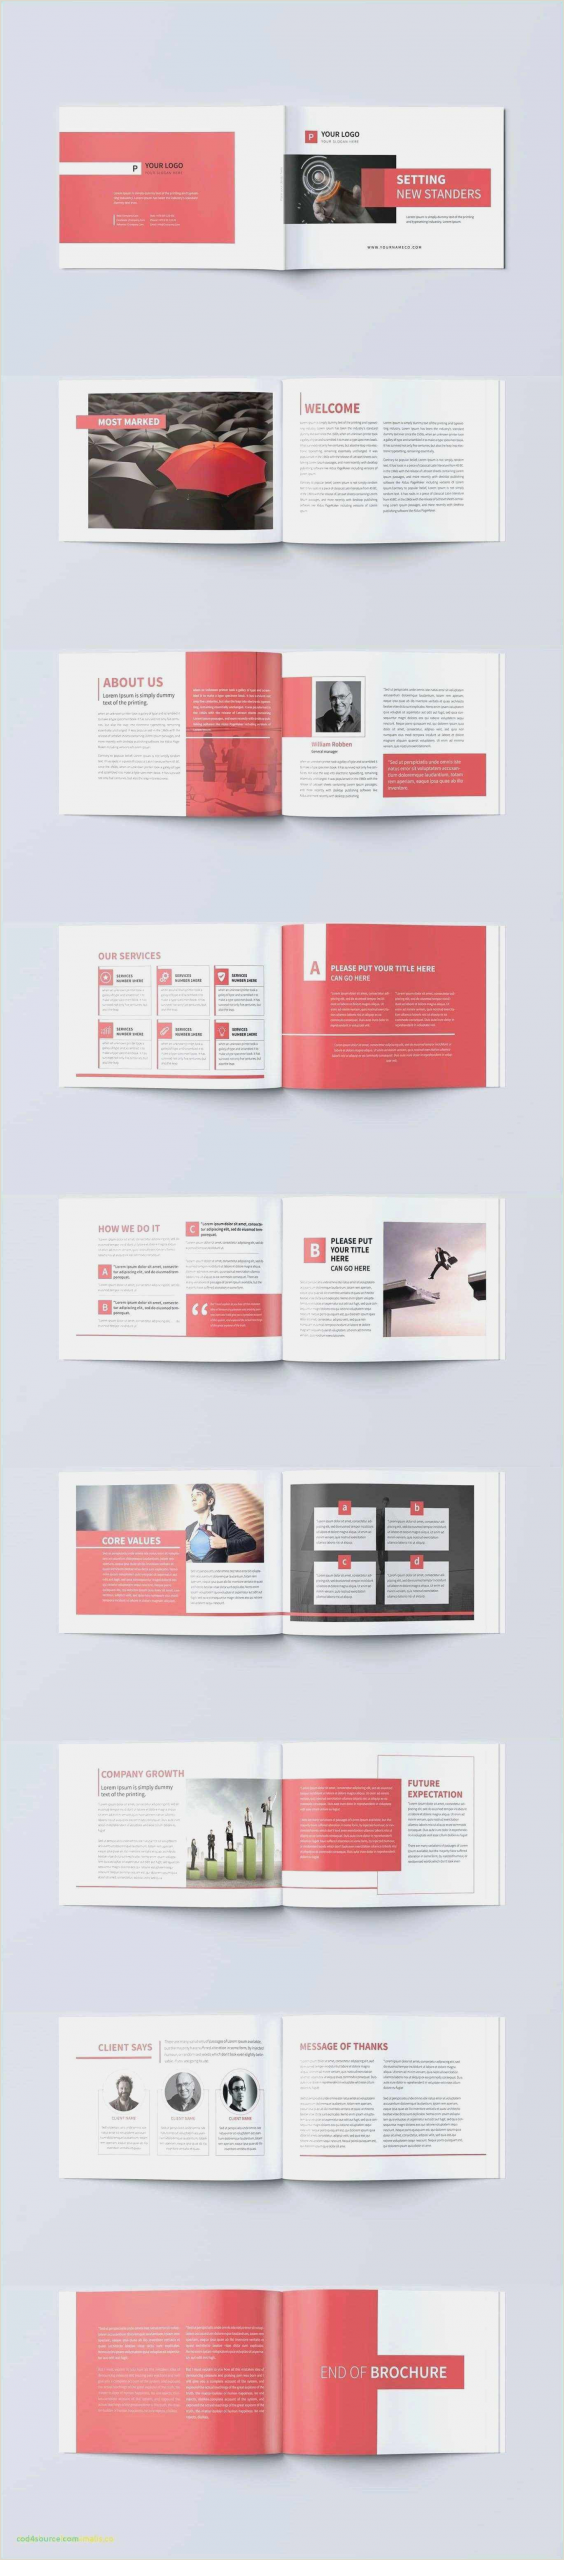 Business Cards Designs Template Business Card Design Templates Free Apocalomegaproductions